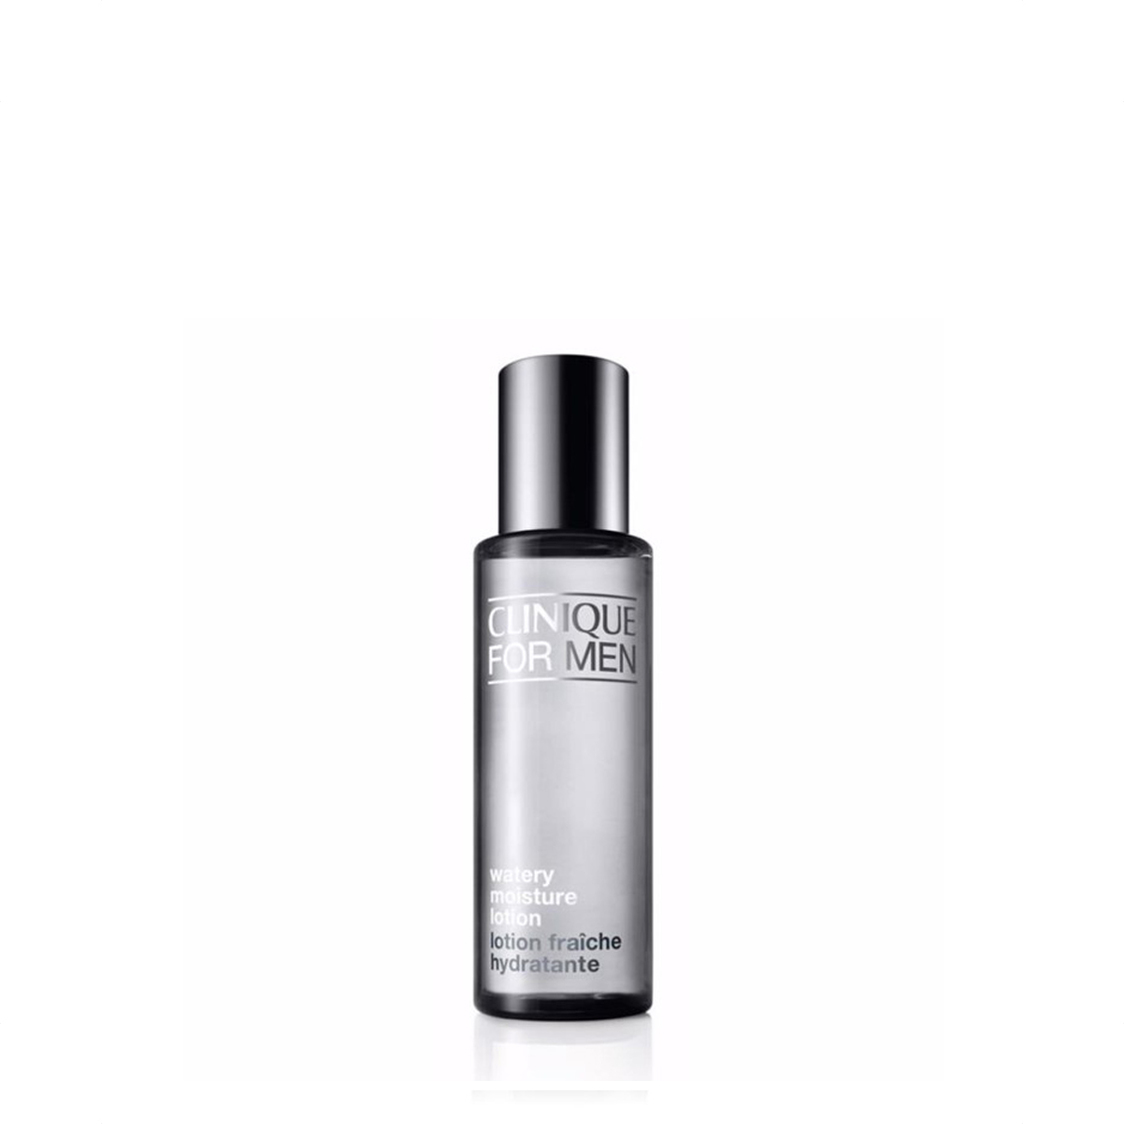 Clinique For Men Watery Moisture Lotion 200ml